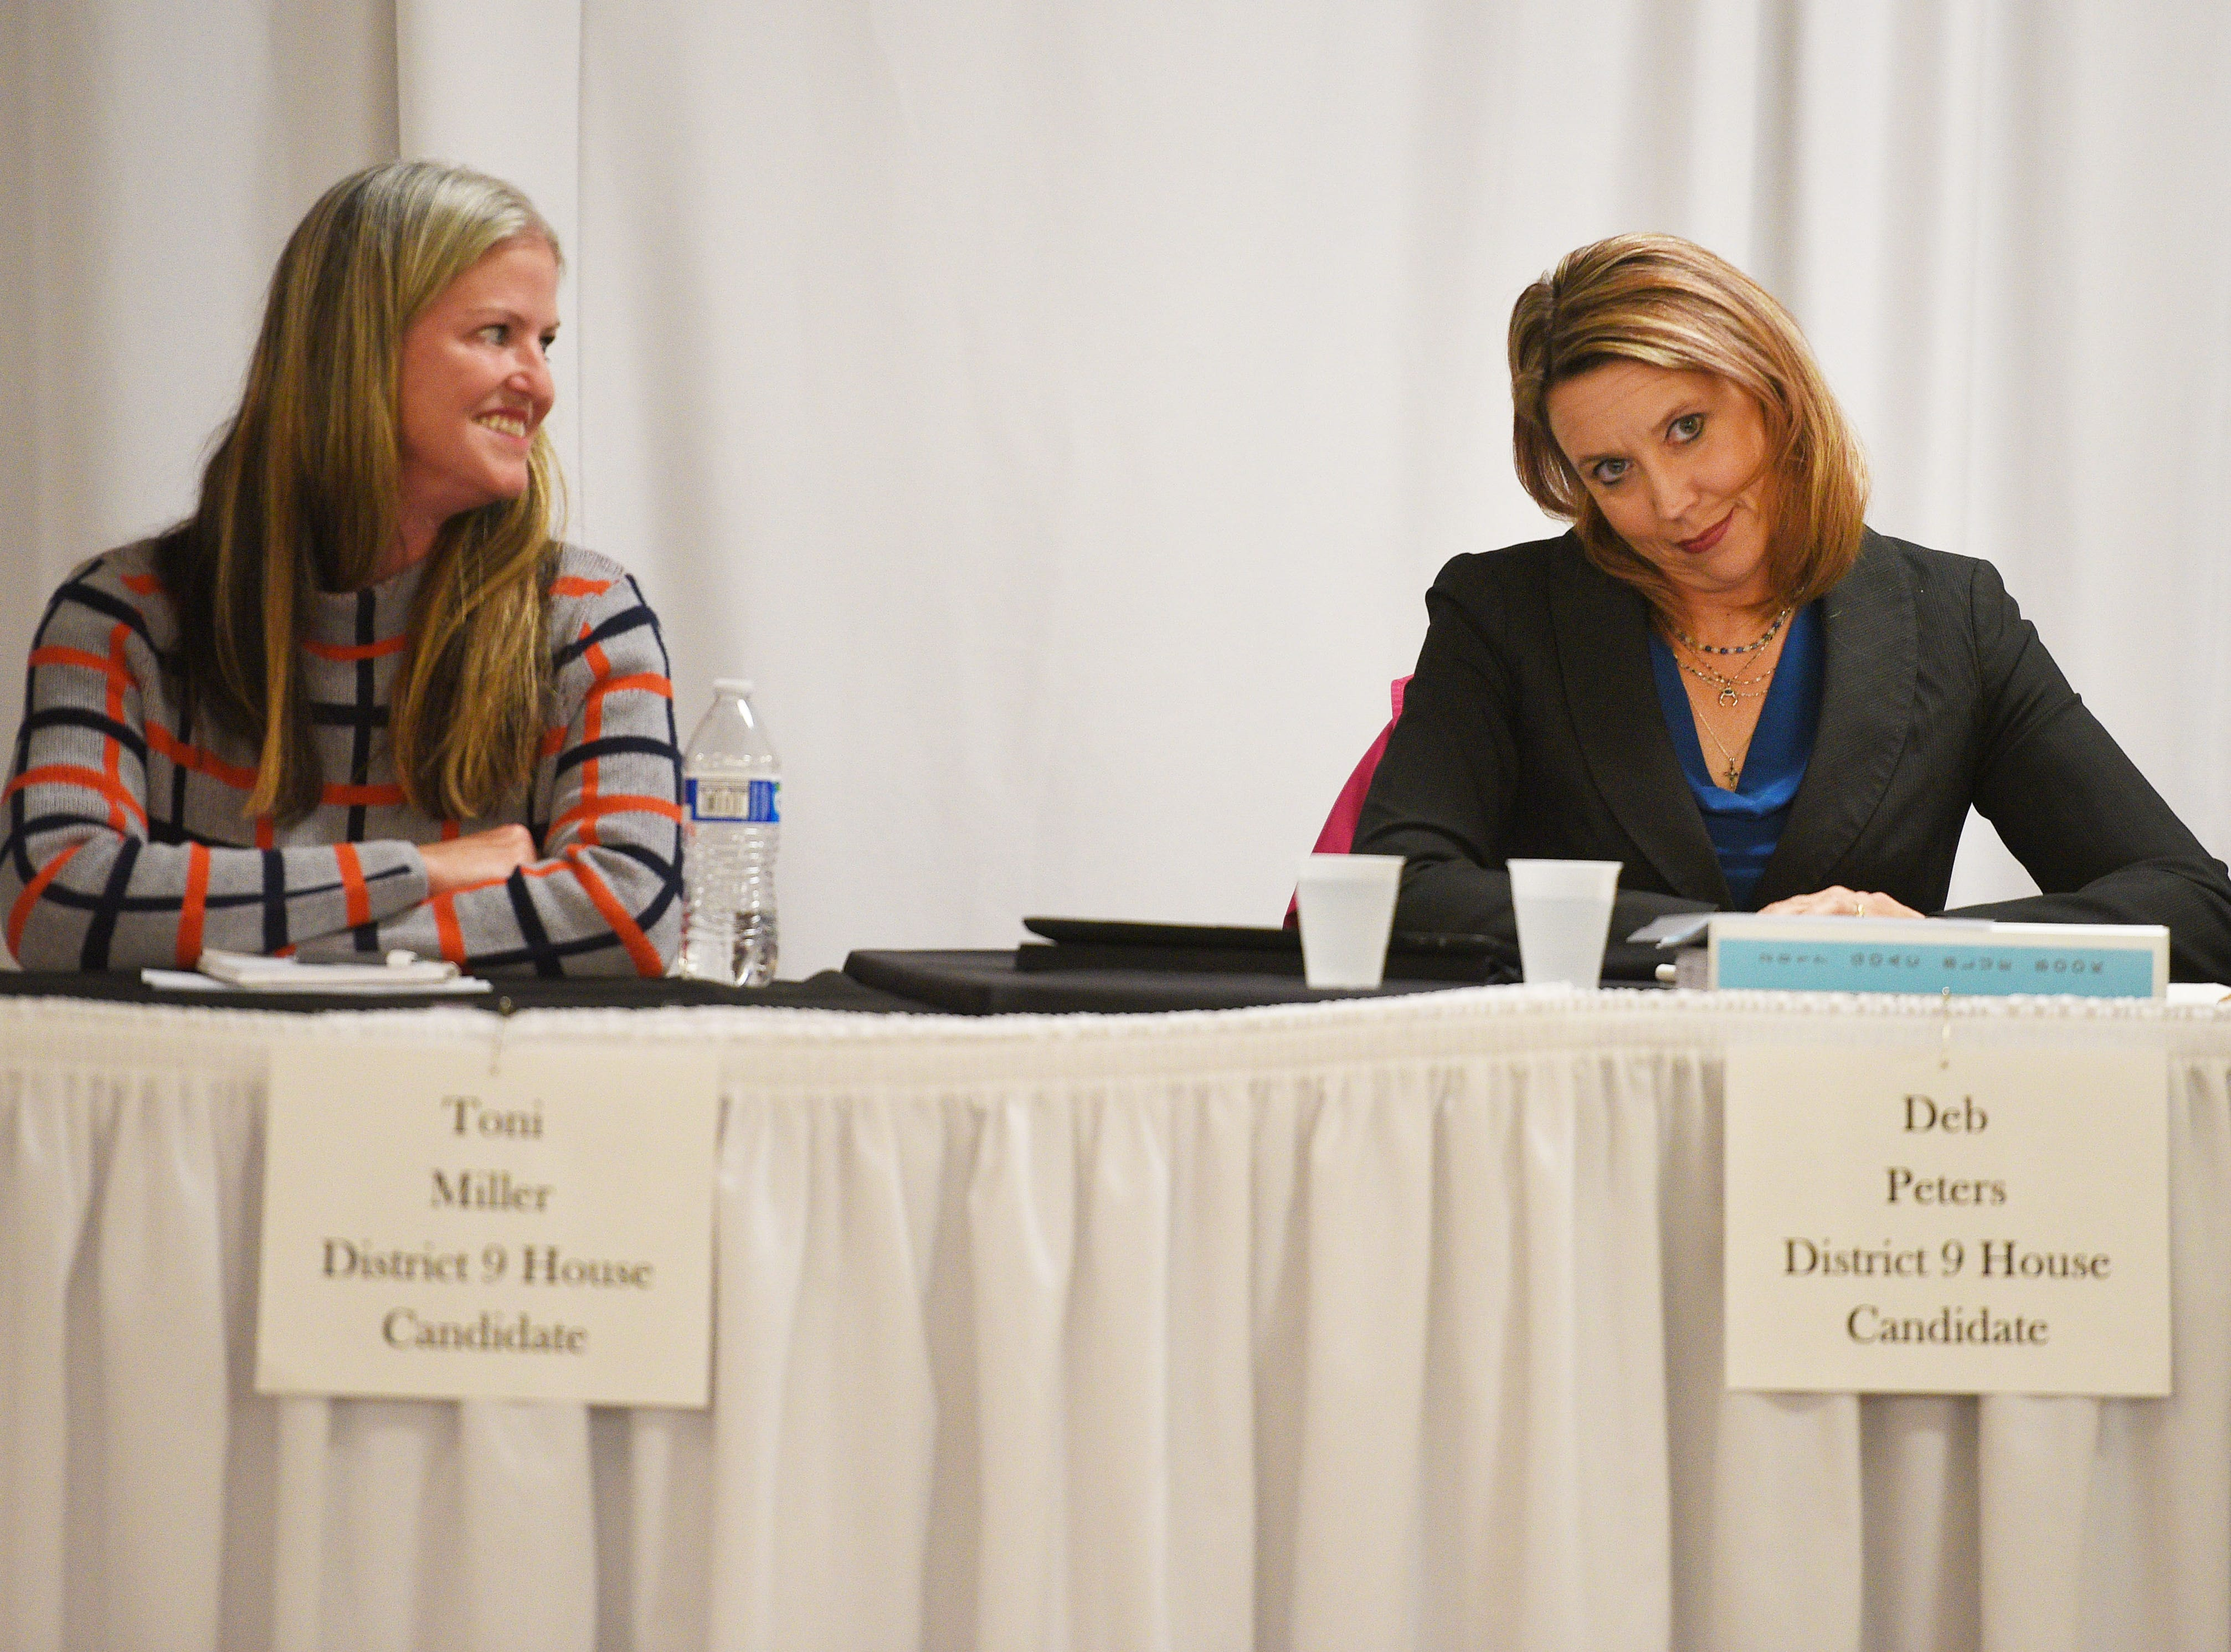 Legislative candidates Toni Miller (D) and Deb Peters (R) answers questions from constituents Thursday, Sept. 27, at Dakota Plains Event Center in Hartford. Candidates discussed Initiated Measure 22, health care and spending priorities.